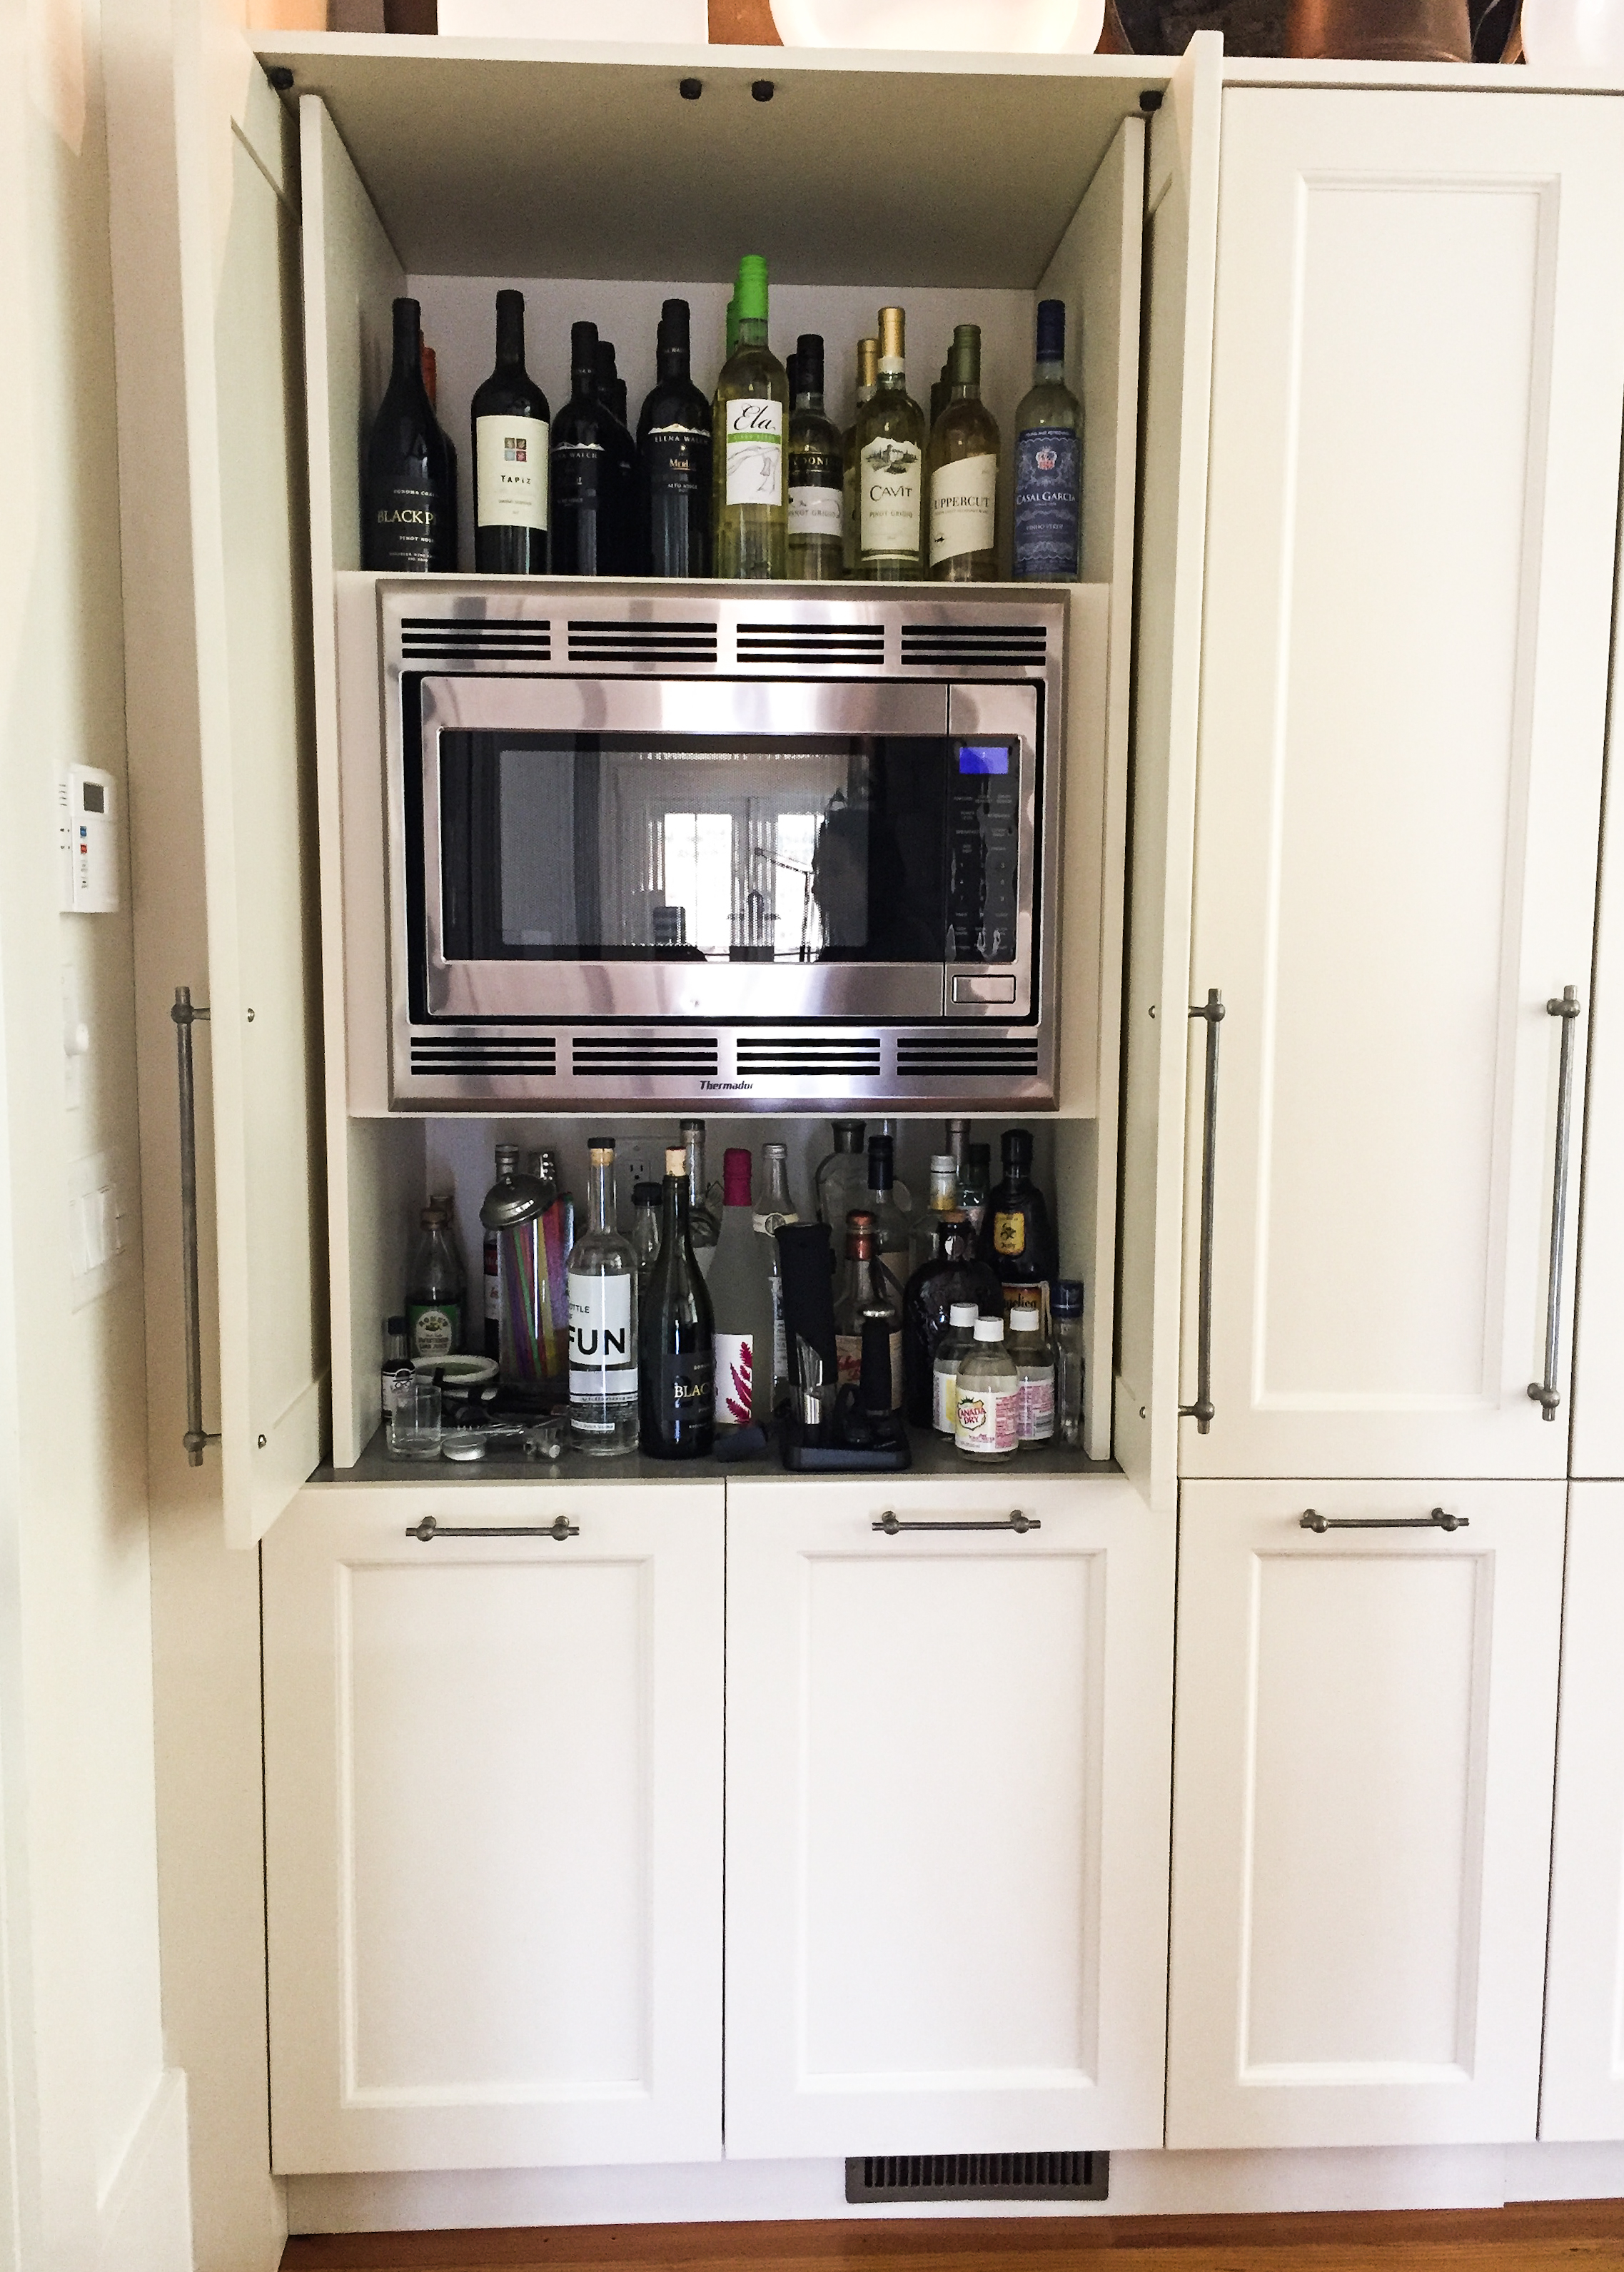 Retractable Doors Make the Microwave Easy to Access!